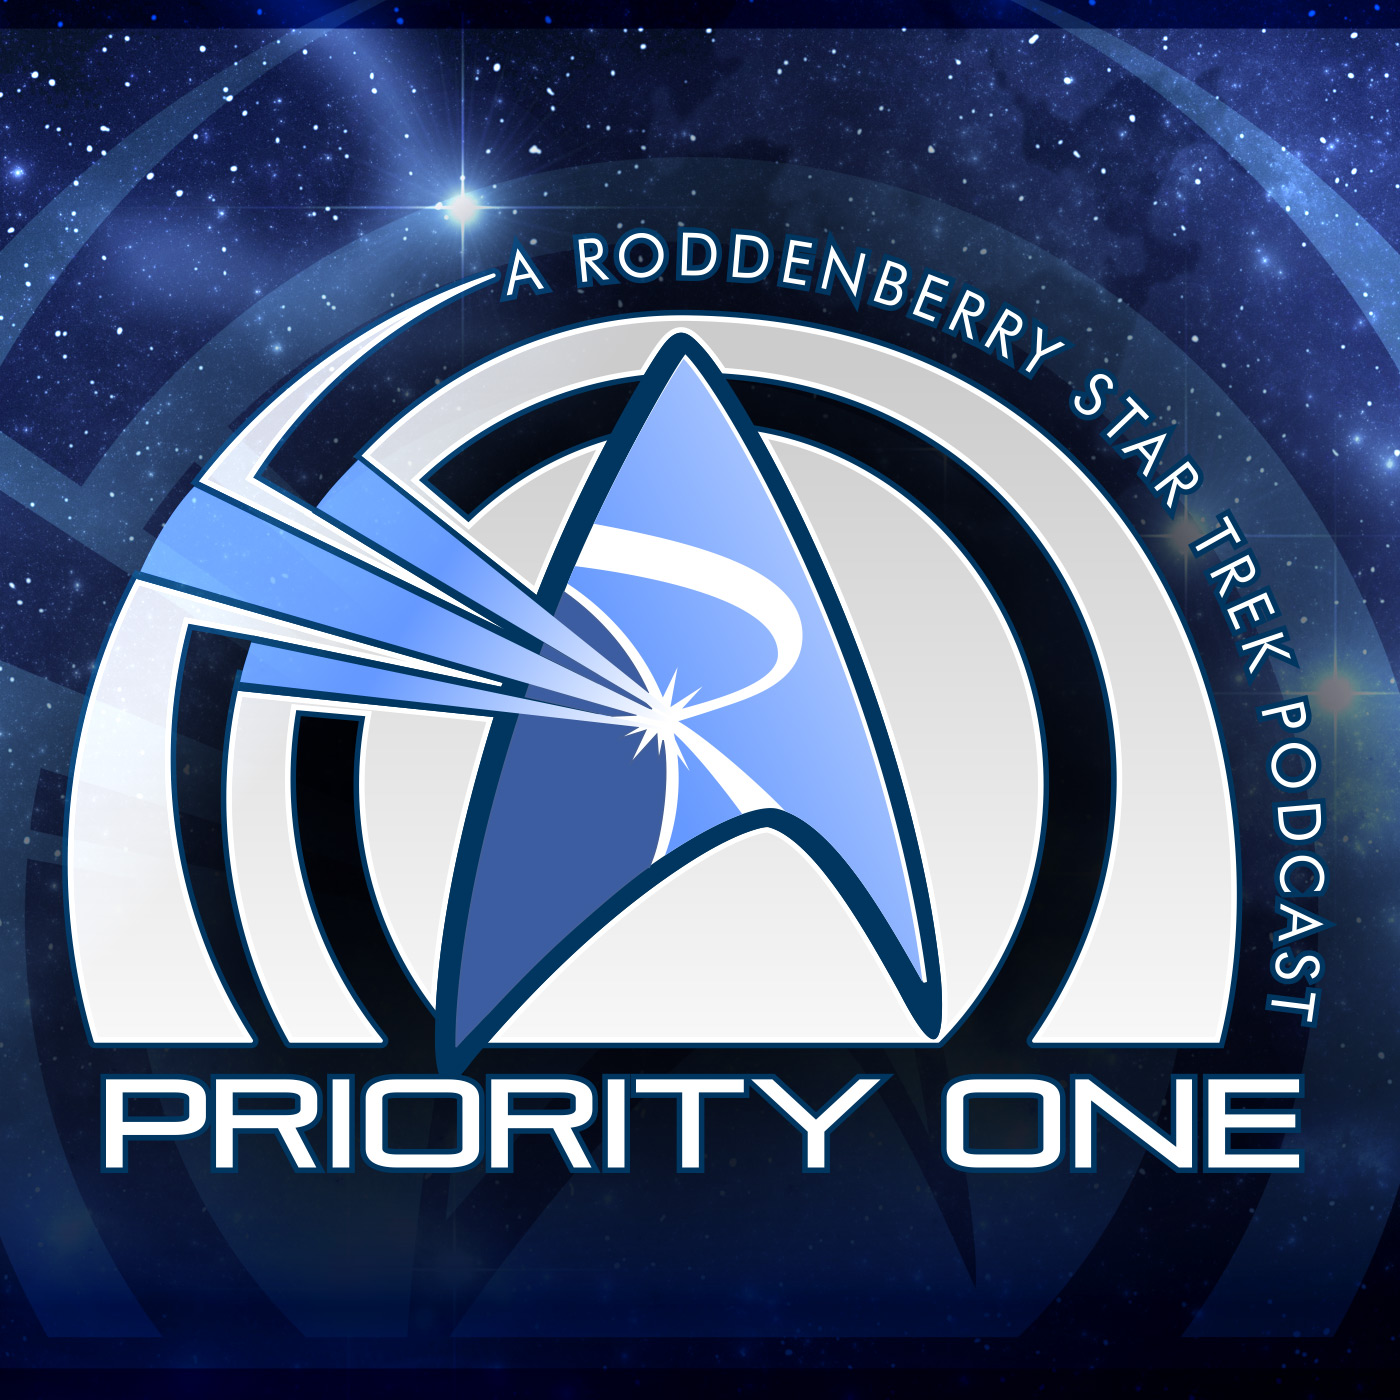 Artwork for 344 - ...What A Savings! | Priority One: A Roddenberry Star Trek Podcast